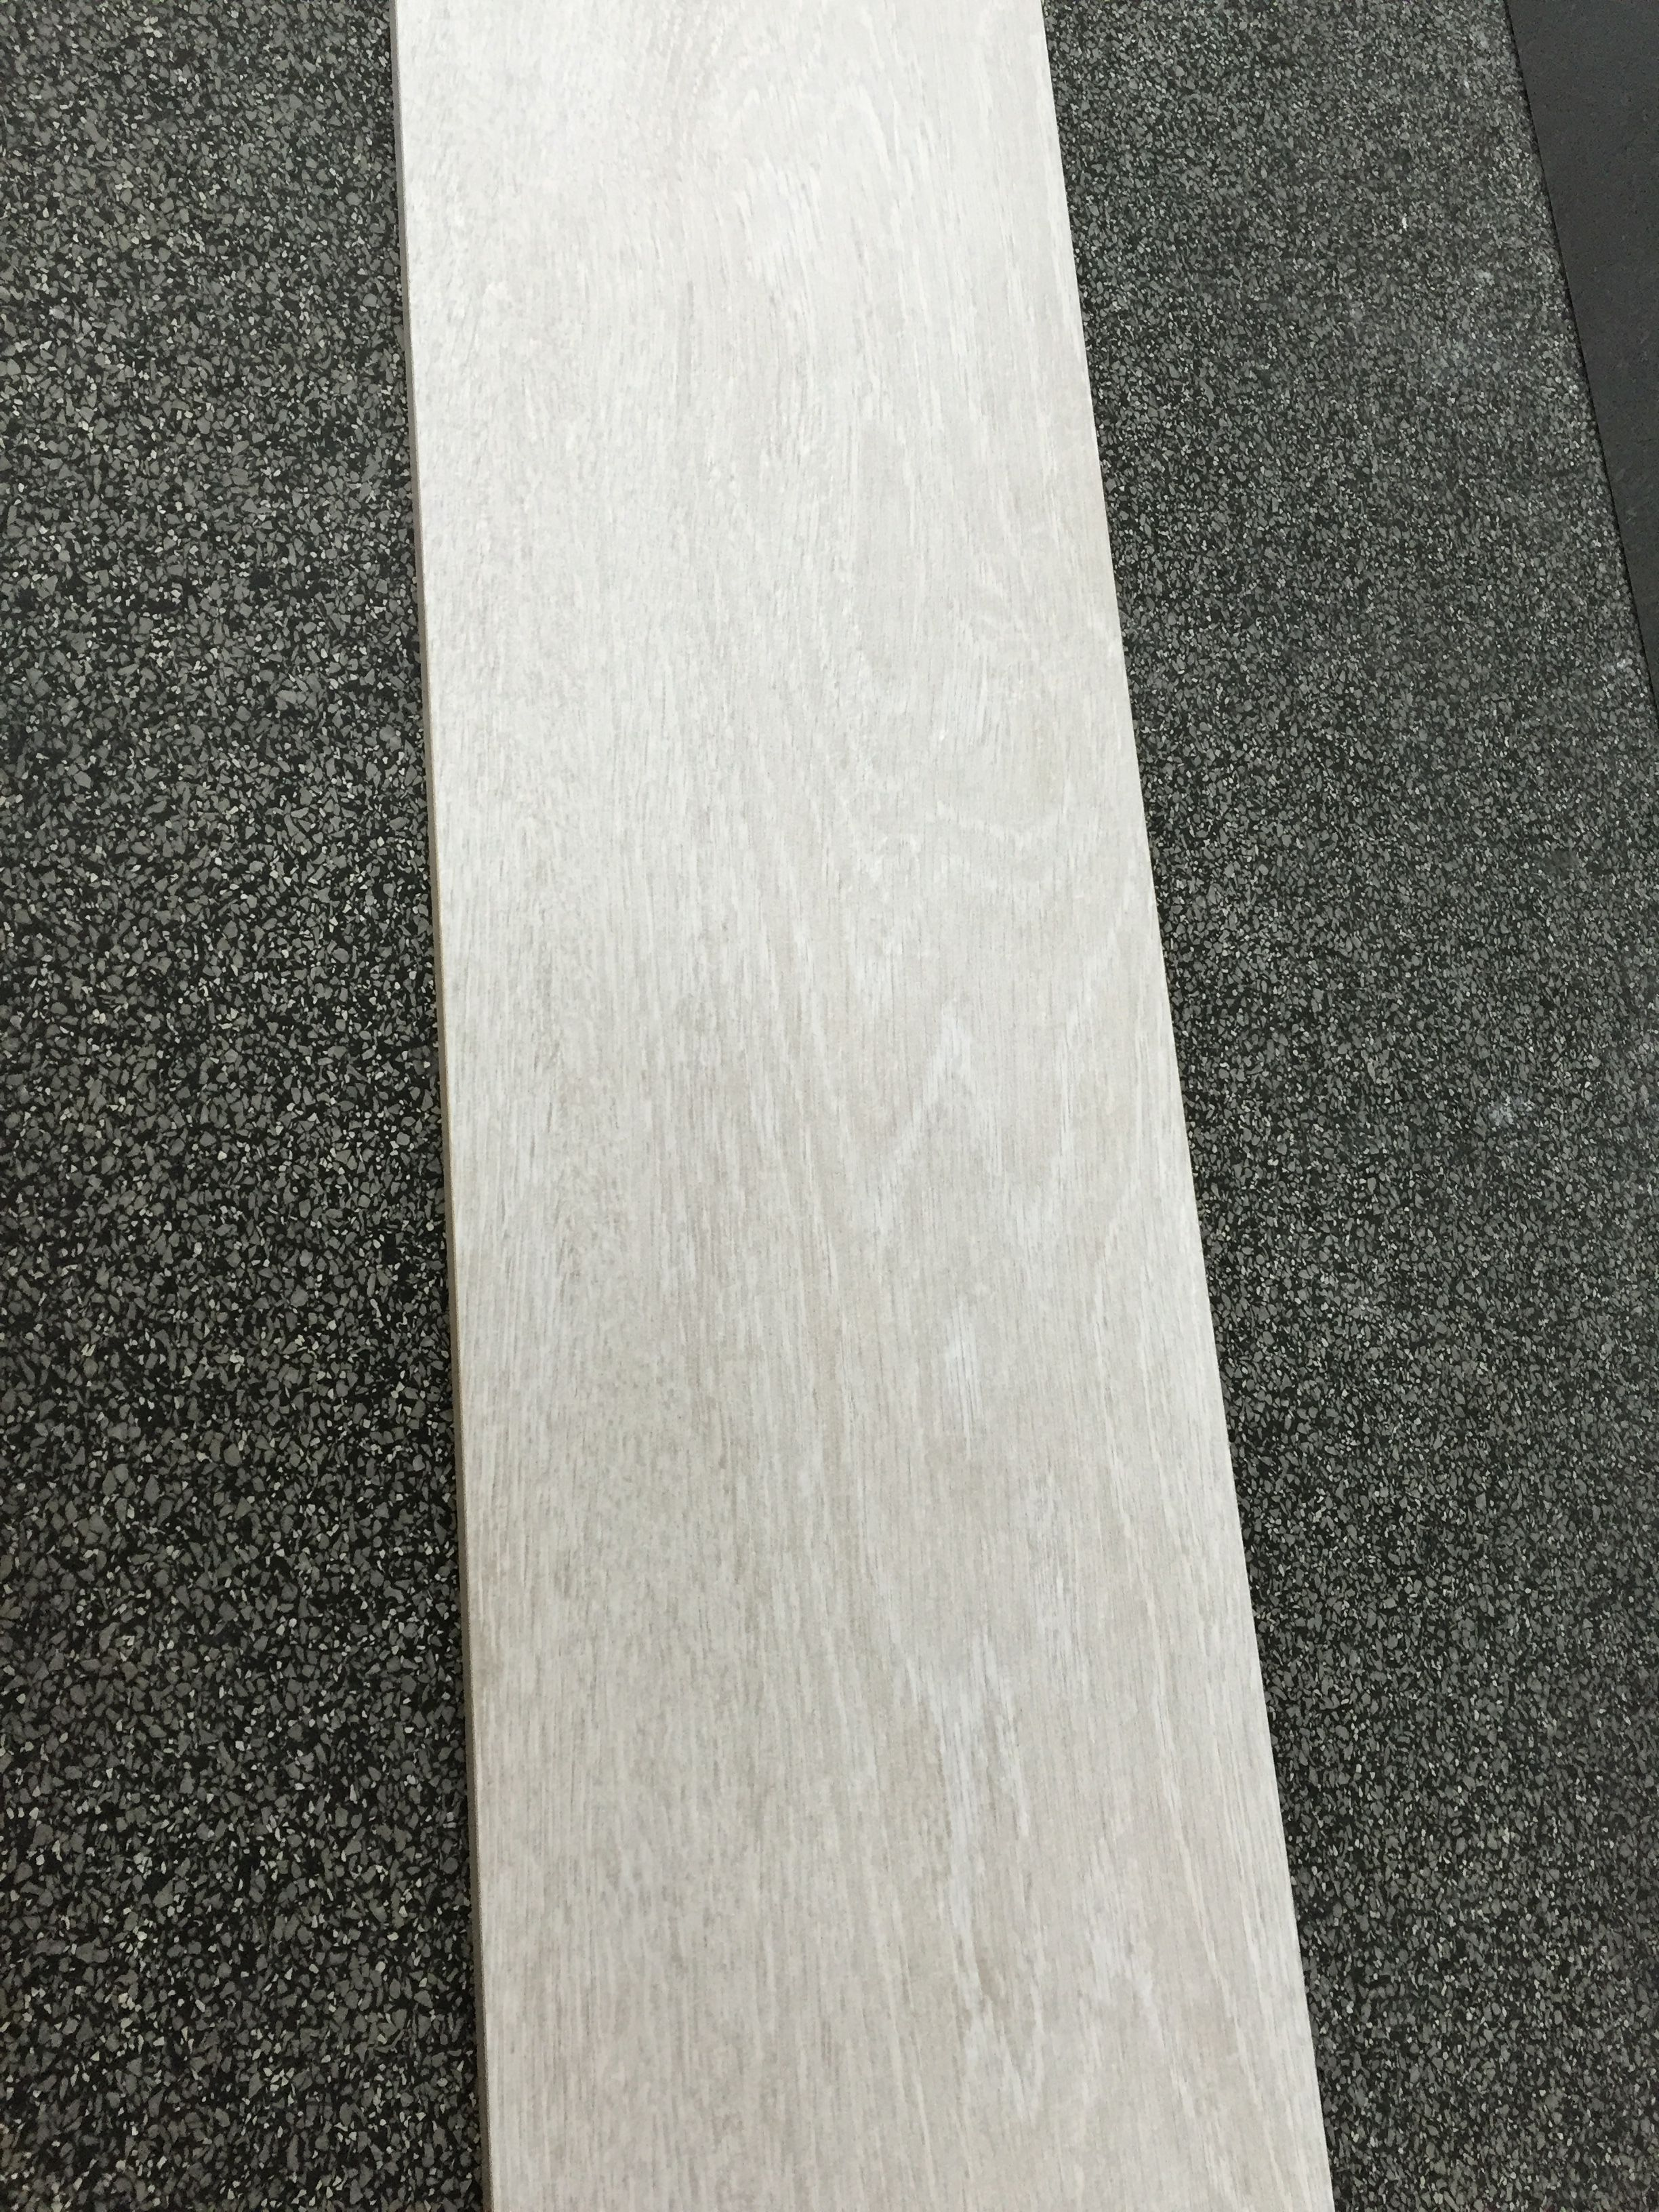 Tile floor board